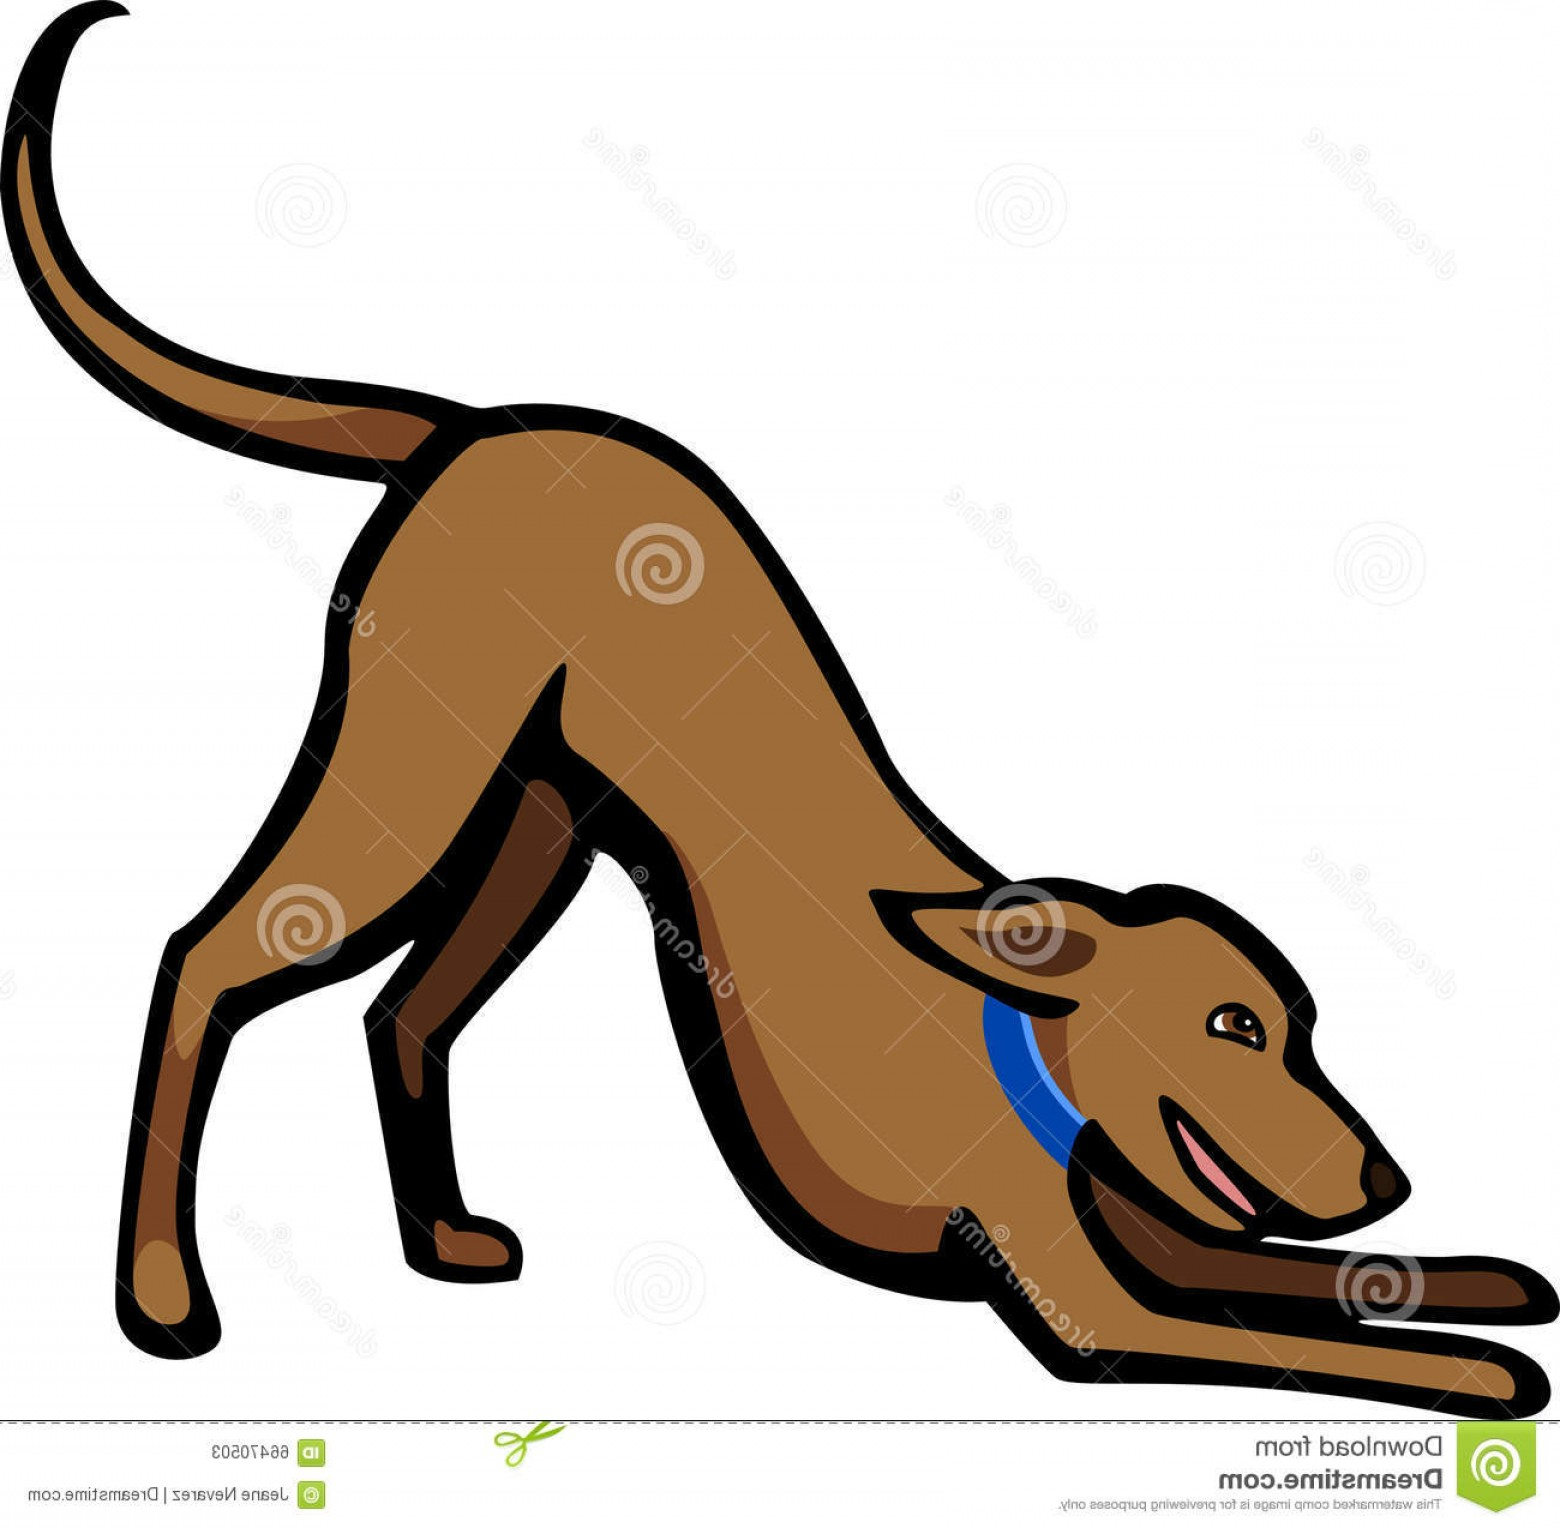 Bpxer Vector Art Happy Dog: Stock Illustration Dog Play Bow Stylized Illustration Happy Gesture Eps File Pending Image